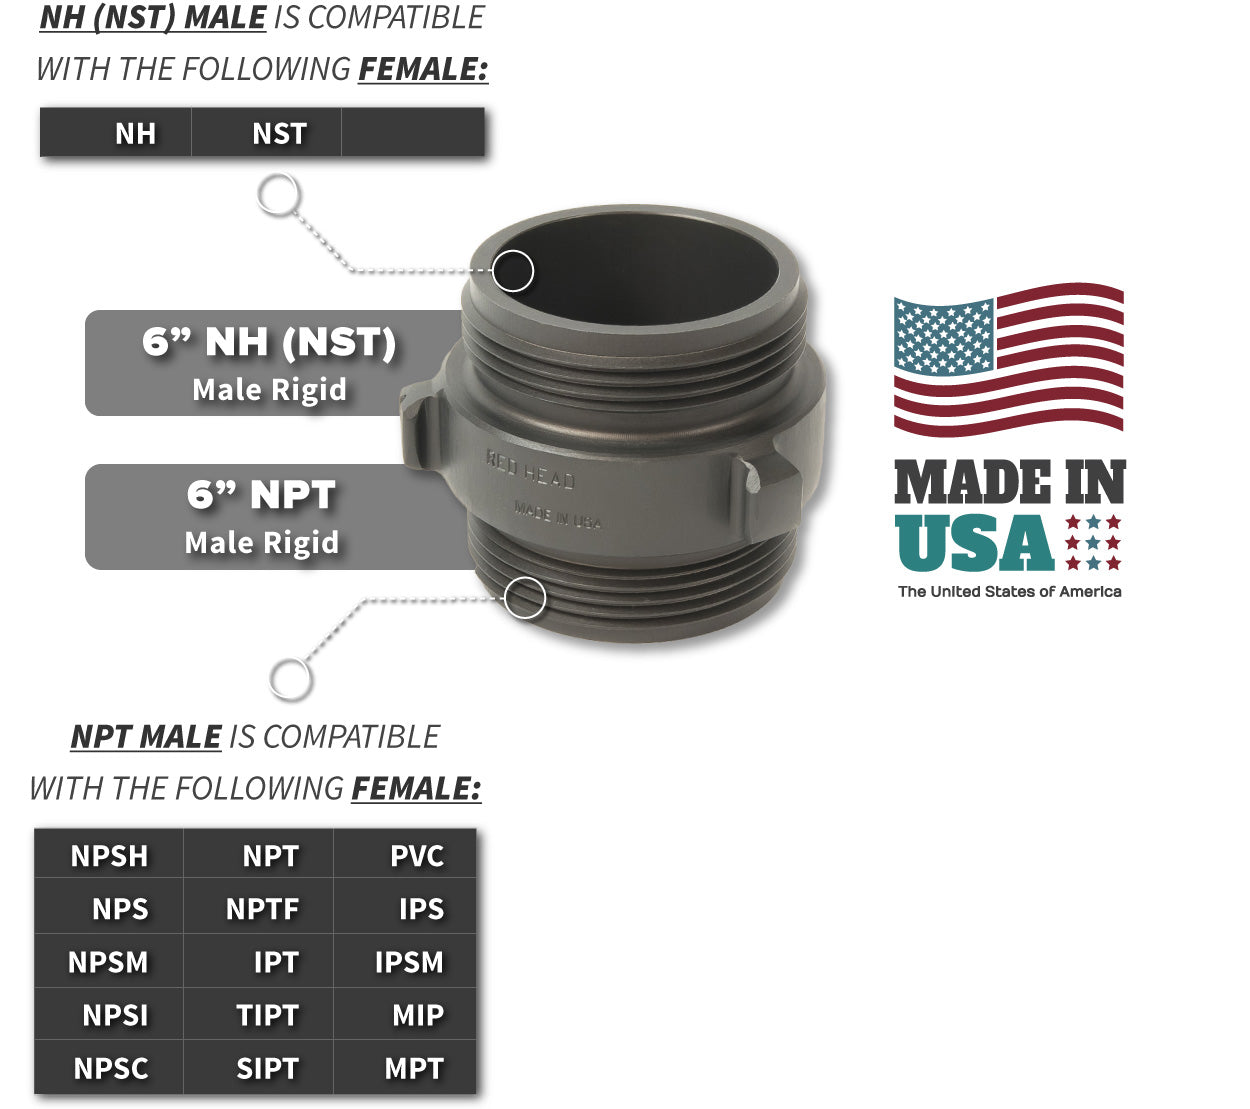 6 Inch NH-NST Male x 6 Inch NPT Male Compatibility Thread Chart